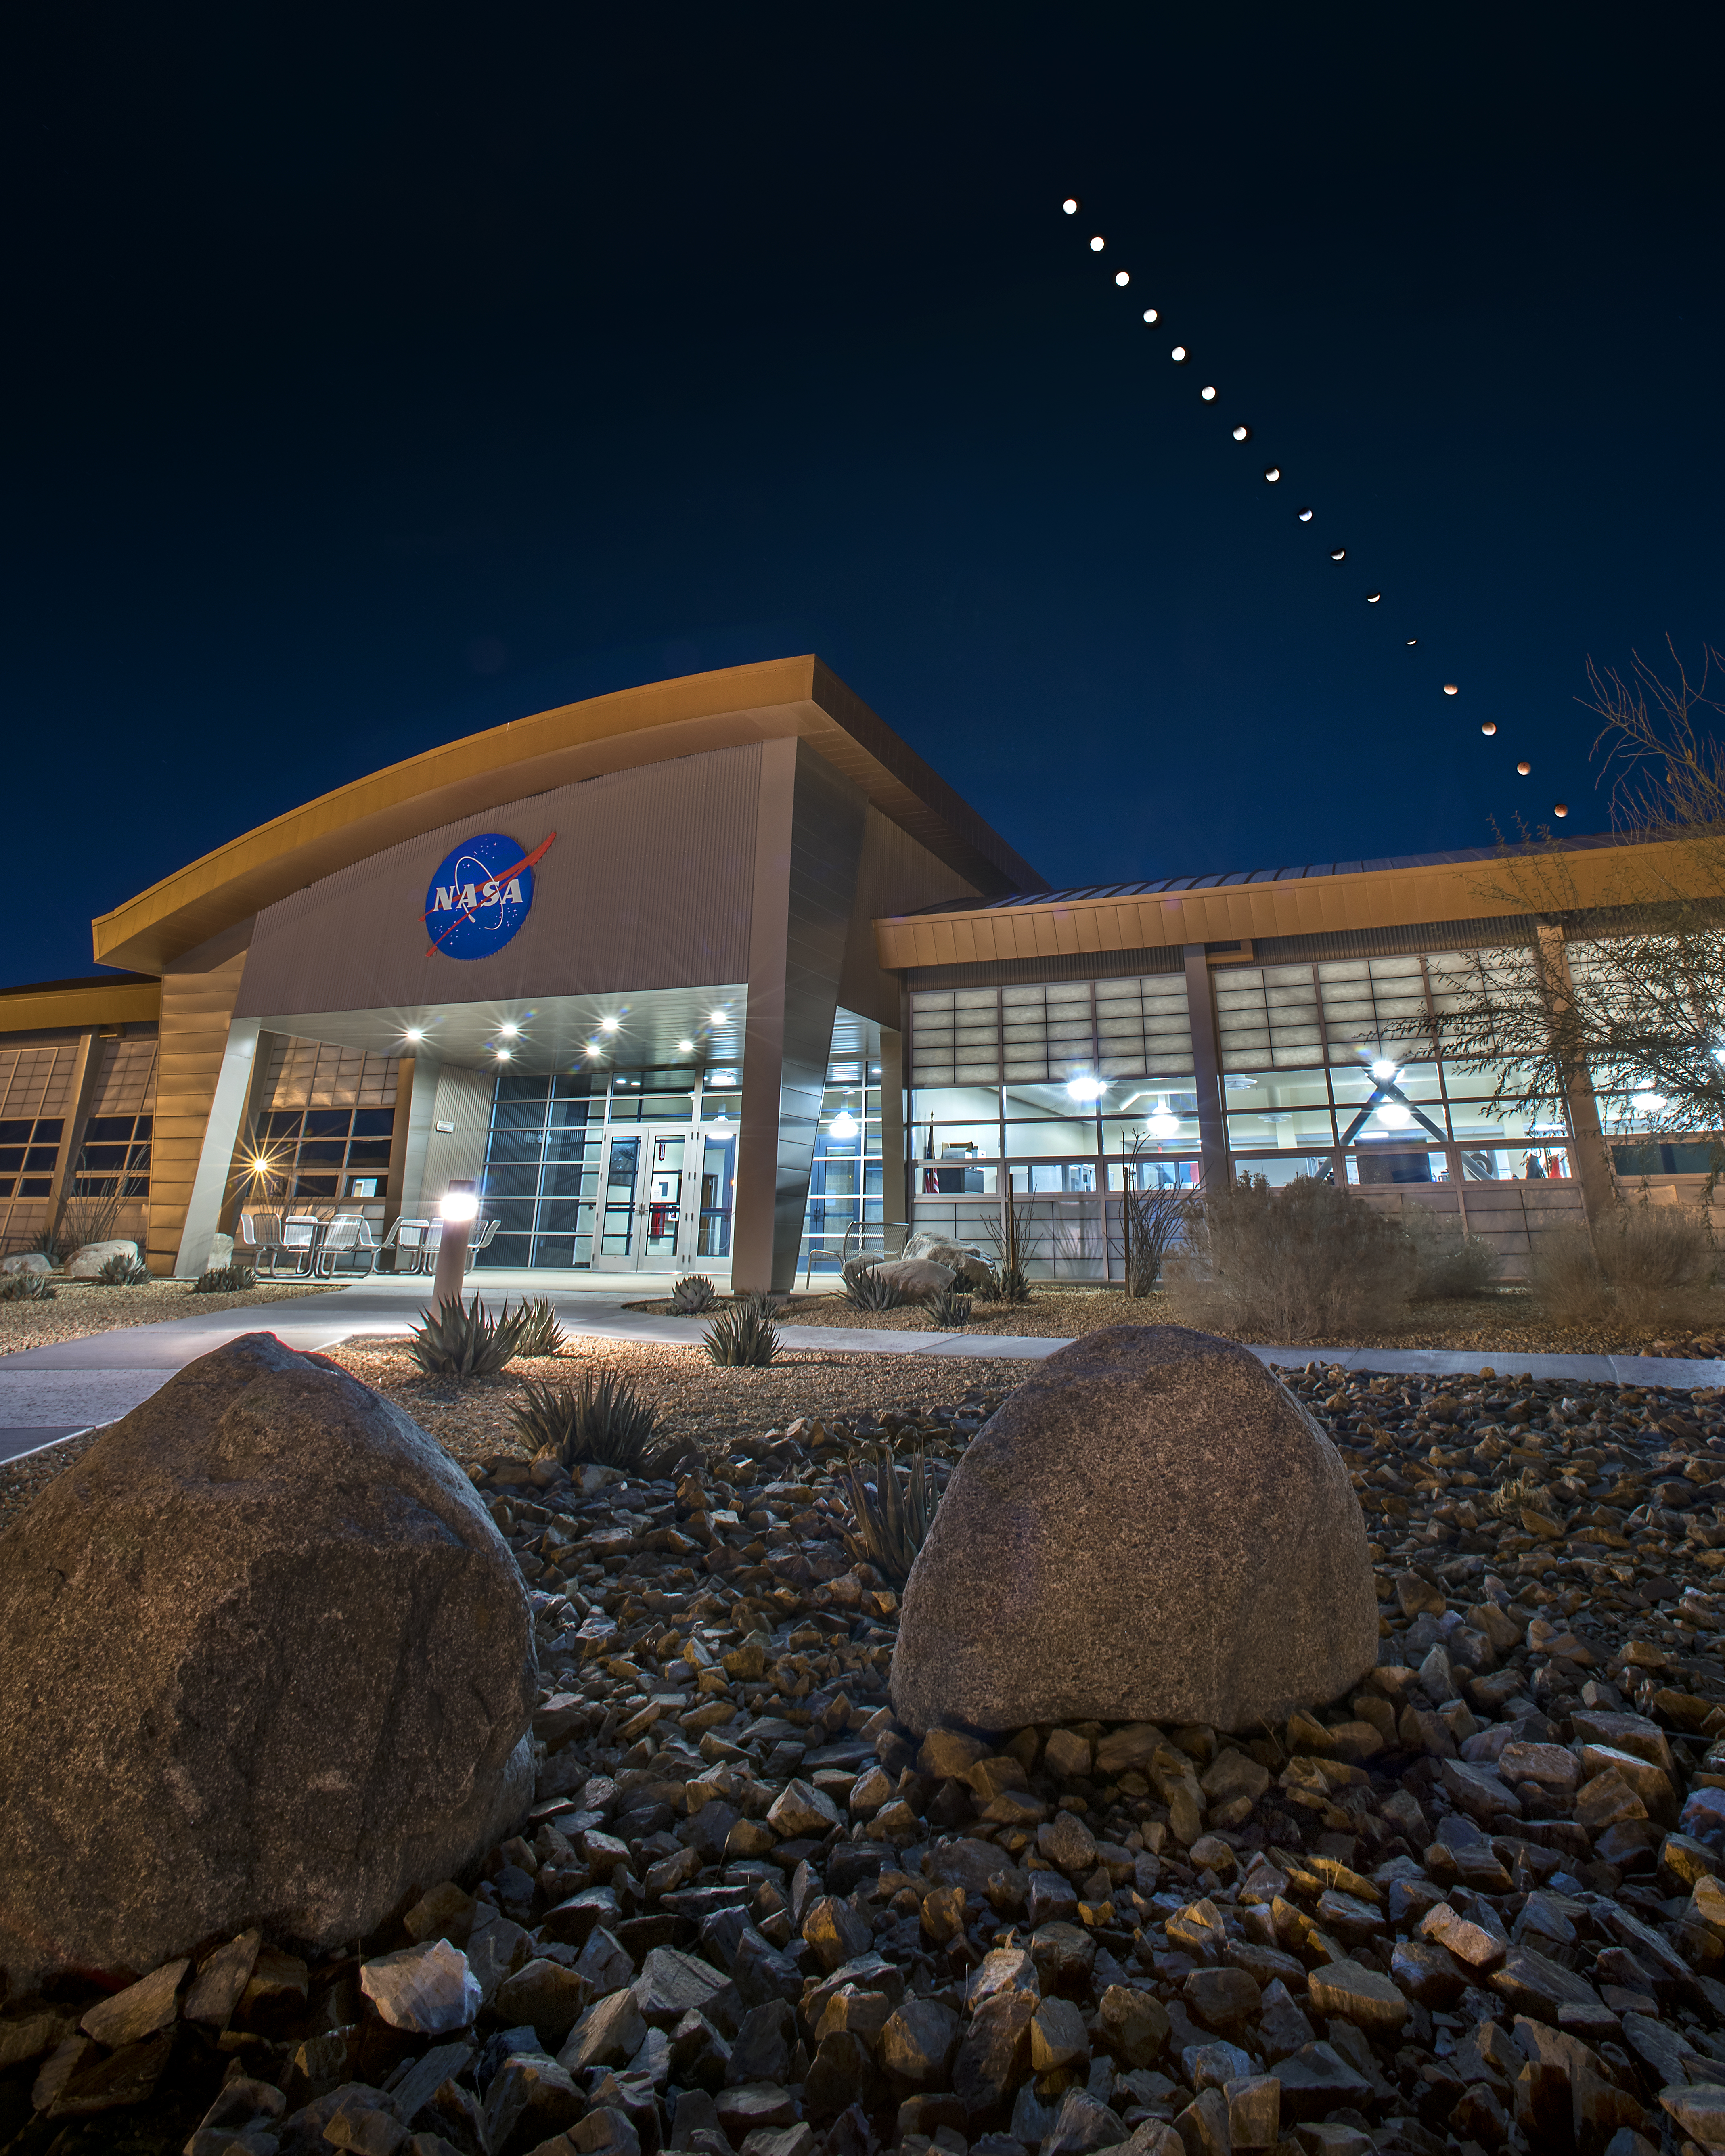 Sequence showing the Moon descending into eclipse above a NASA building.